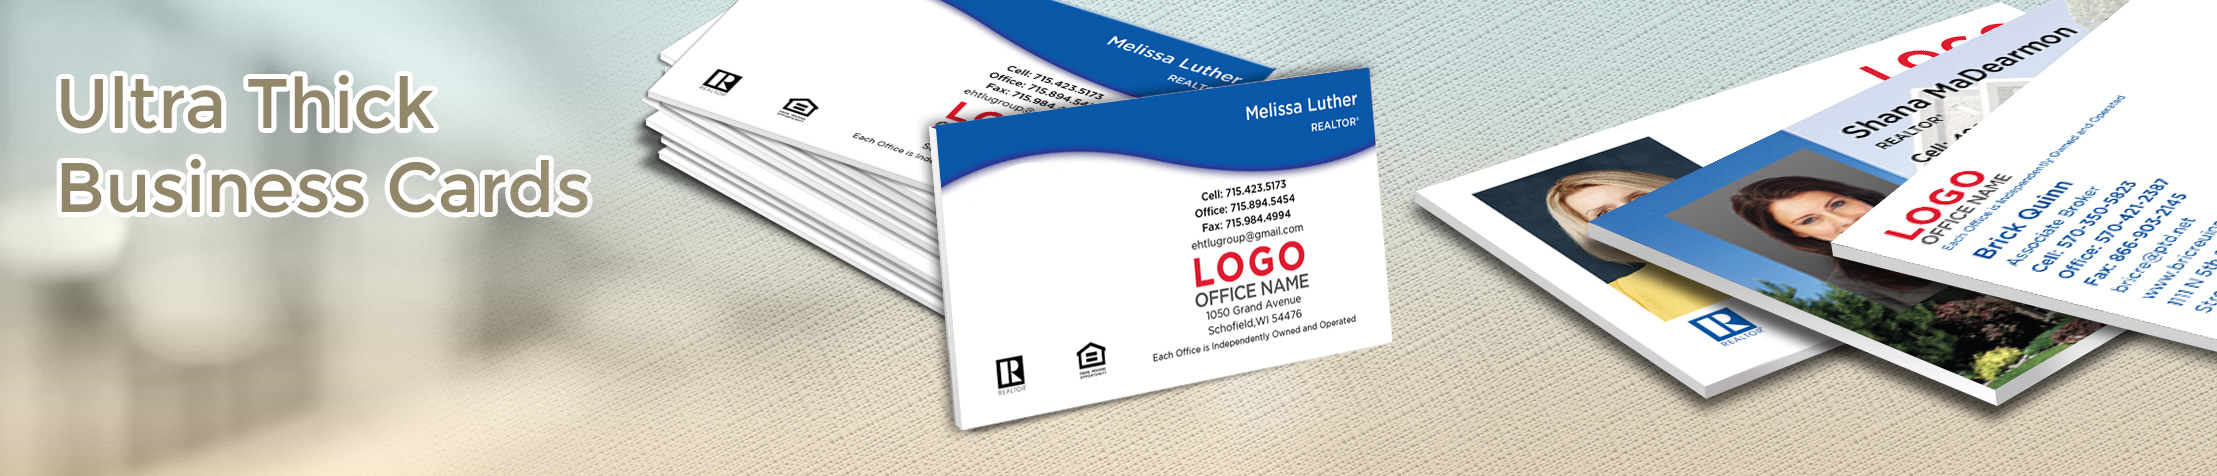 RE/MAX Real Estate Ultra Thick Business Cards - RE/MAX - Luxury, Thick Stock Business Cards with a Matte Finish for Realtors | BestPrintBuy.com